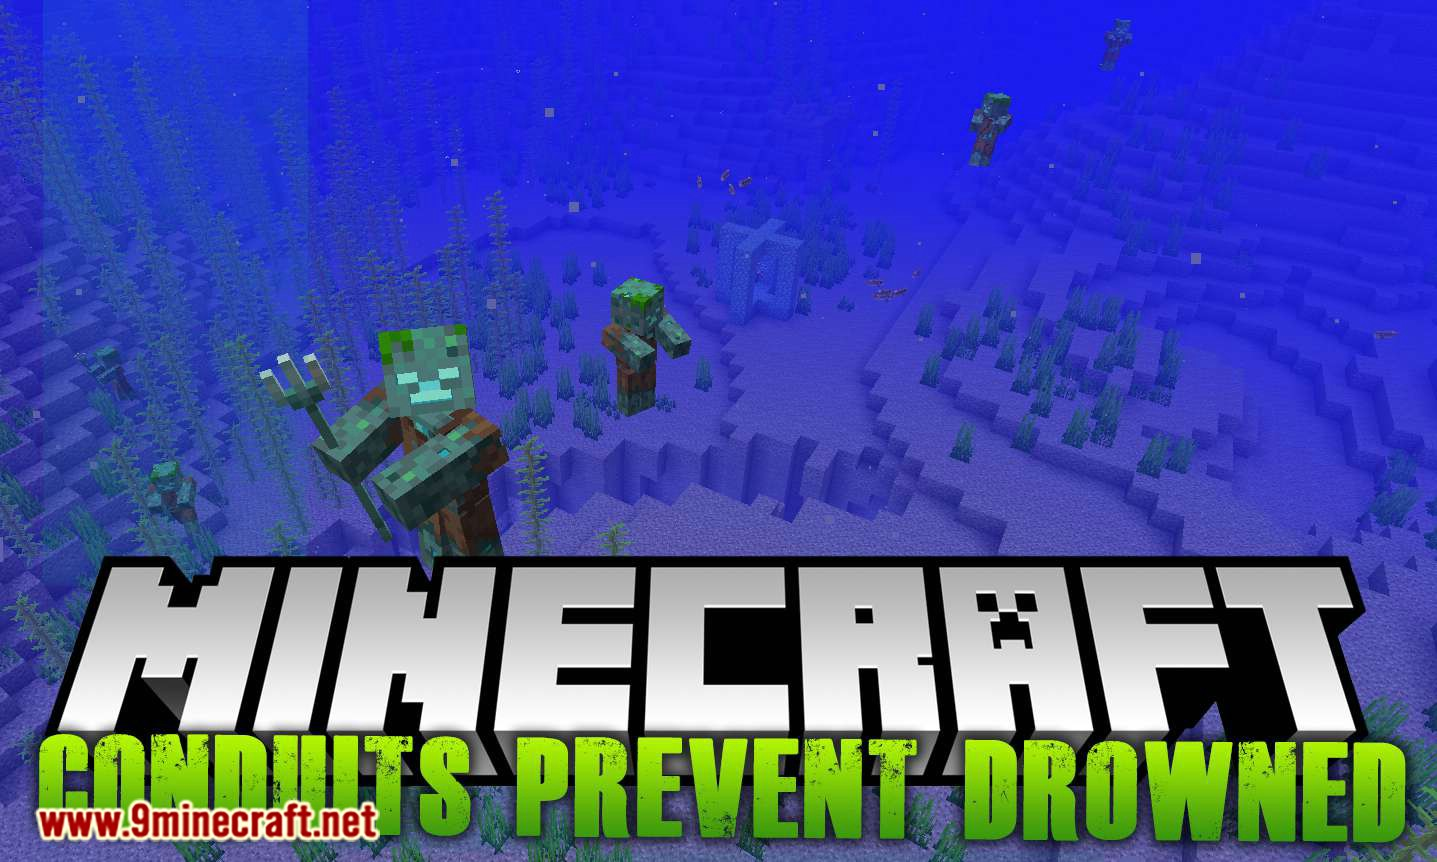 Conduits Prevent Drowned mod for minecraft logo